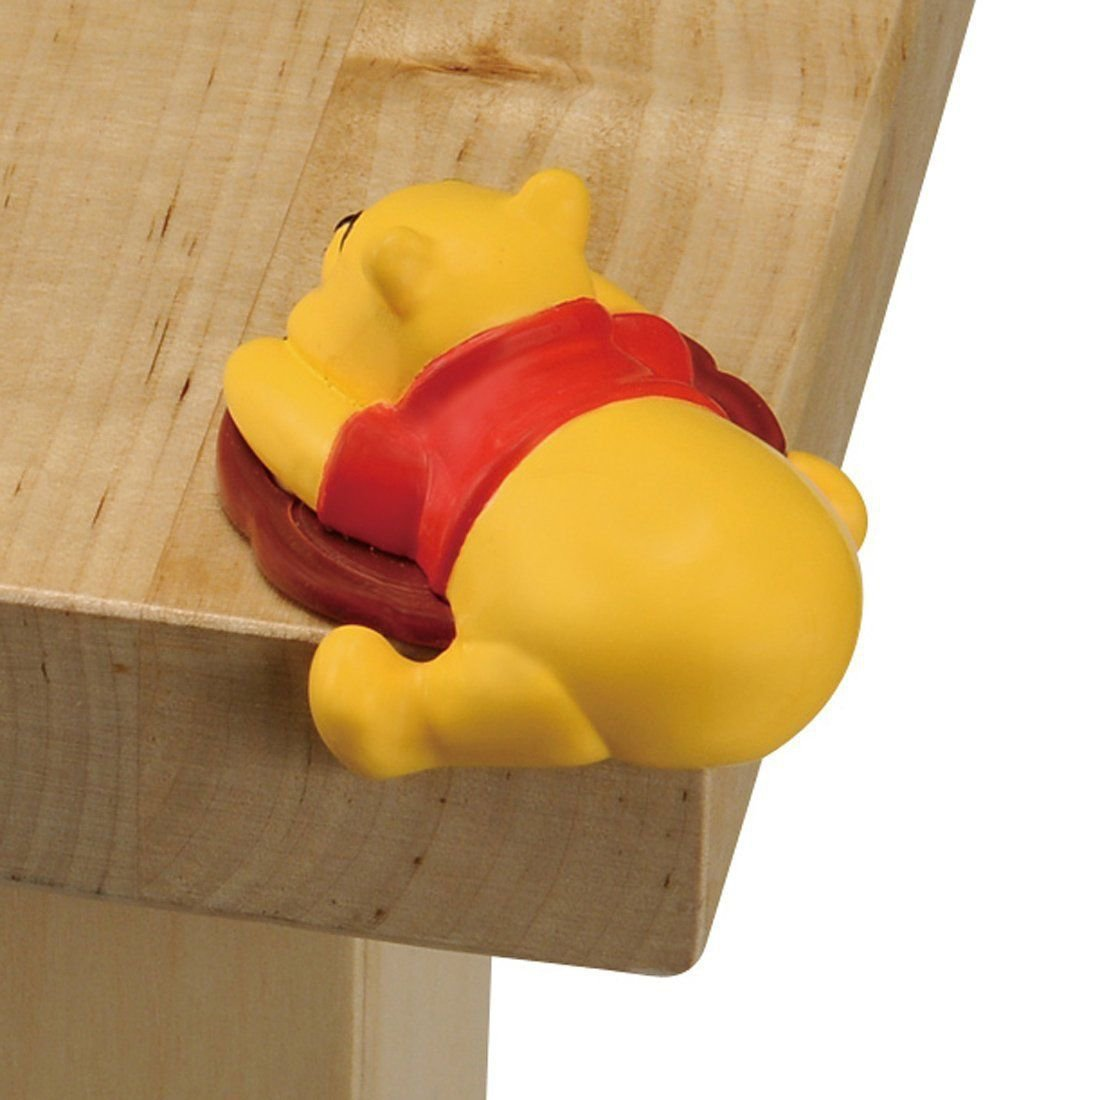 Disney Winnie the Pooh Table Safety Corner Guard Figure Child Baby